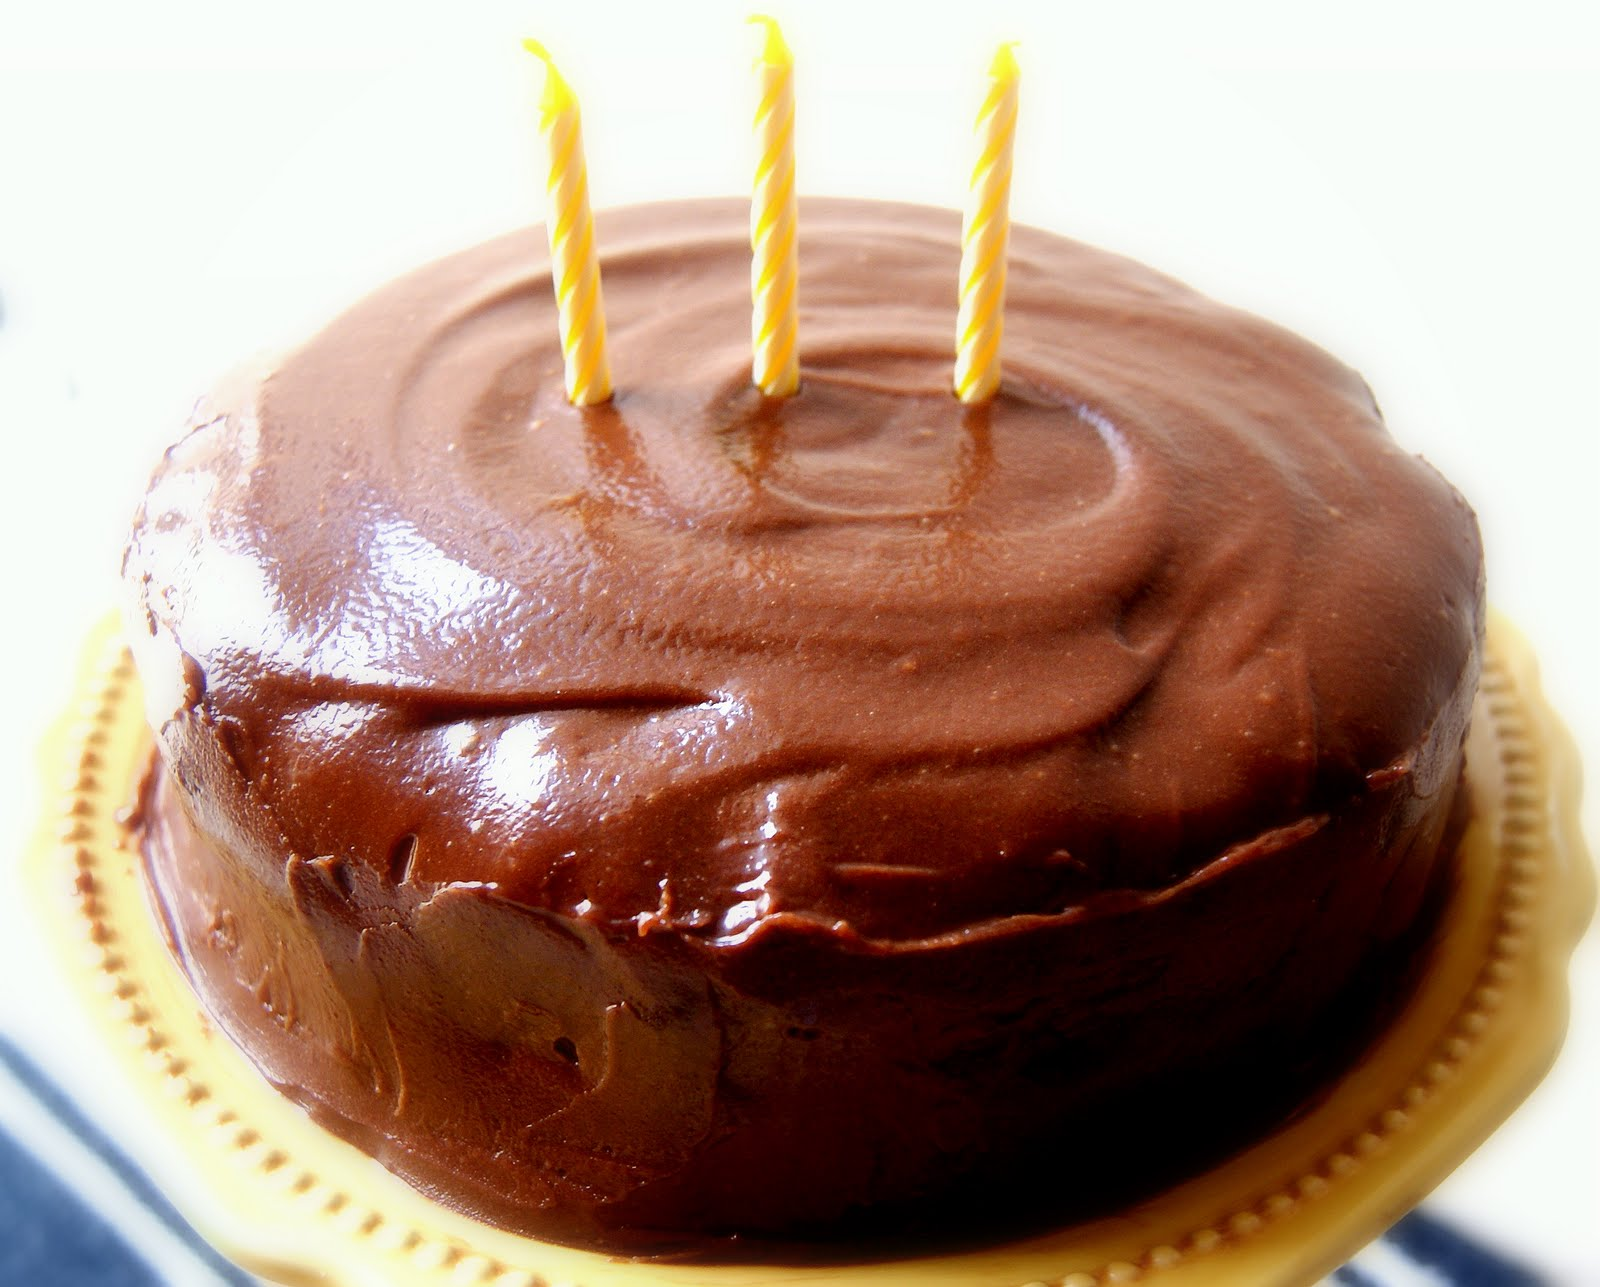 Chocolate Birthday Cake, Chocolate Cake, Birthady Cake